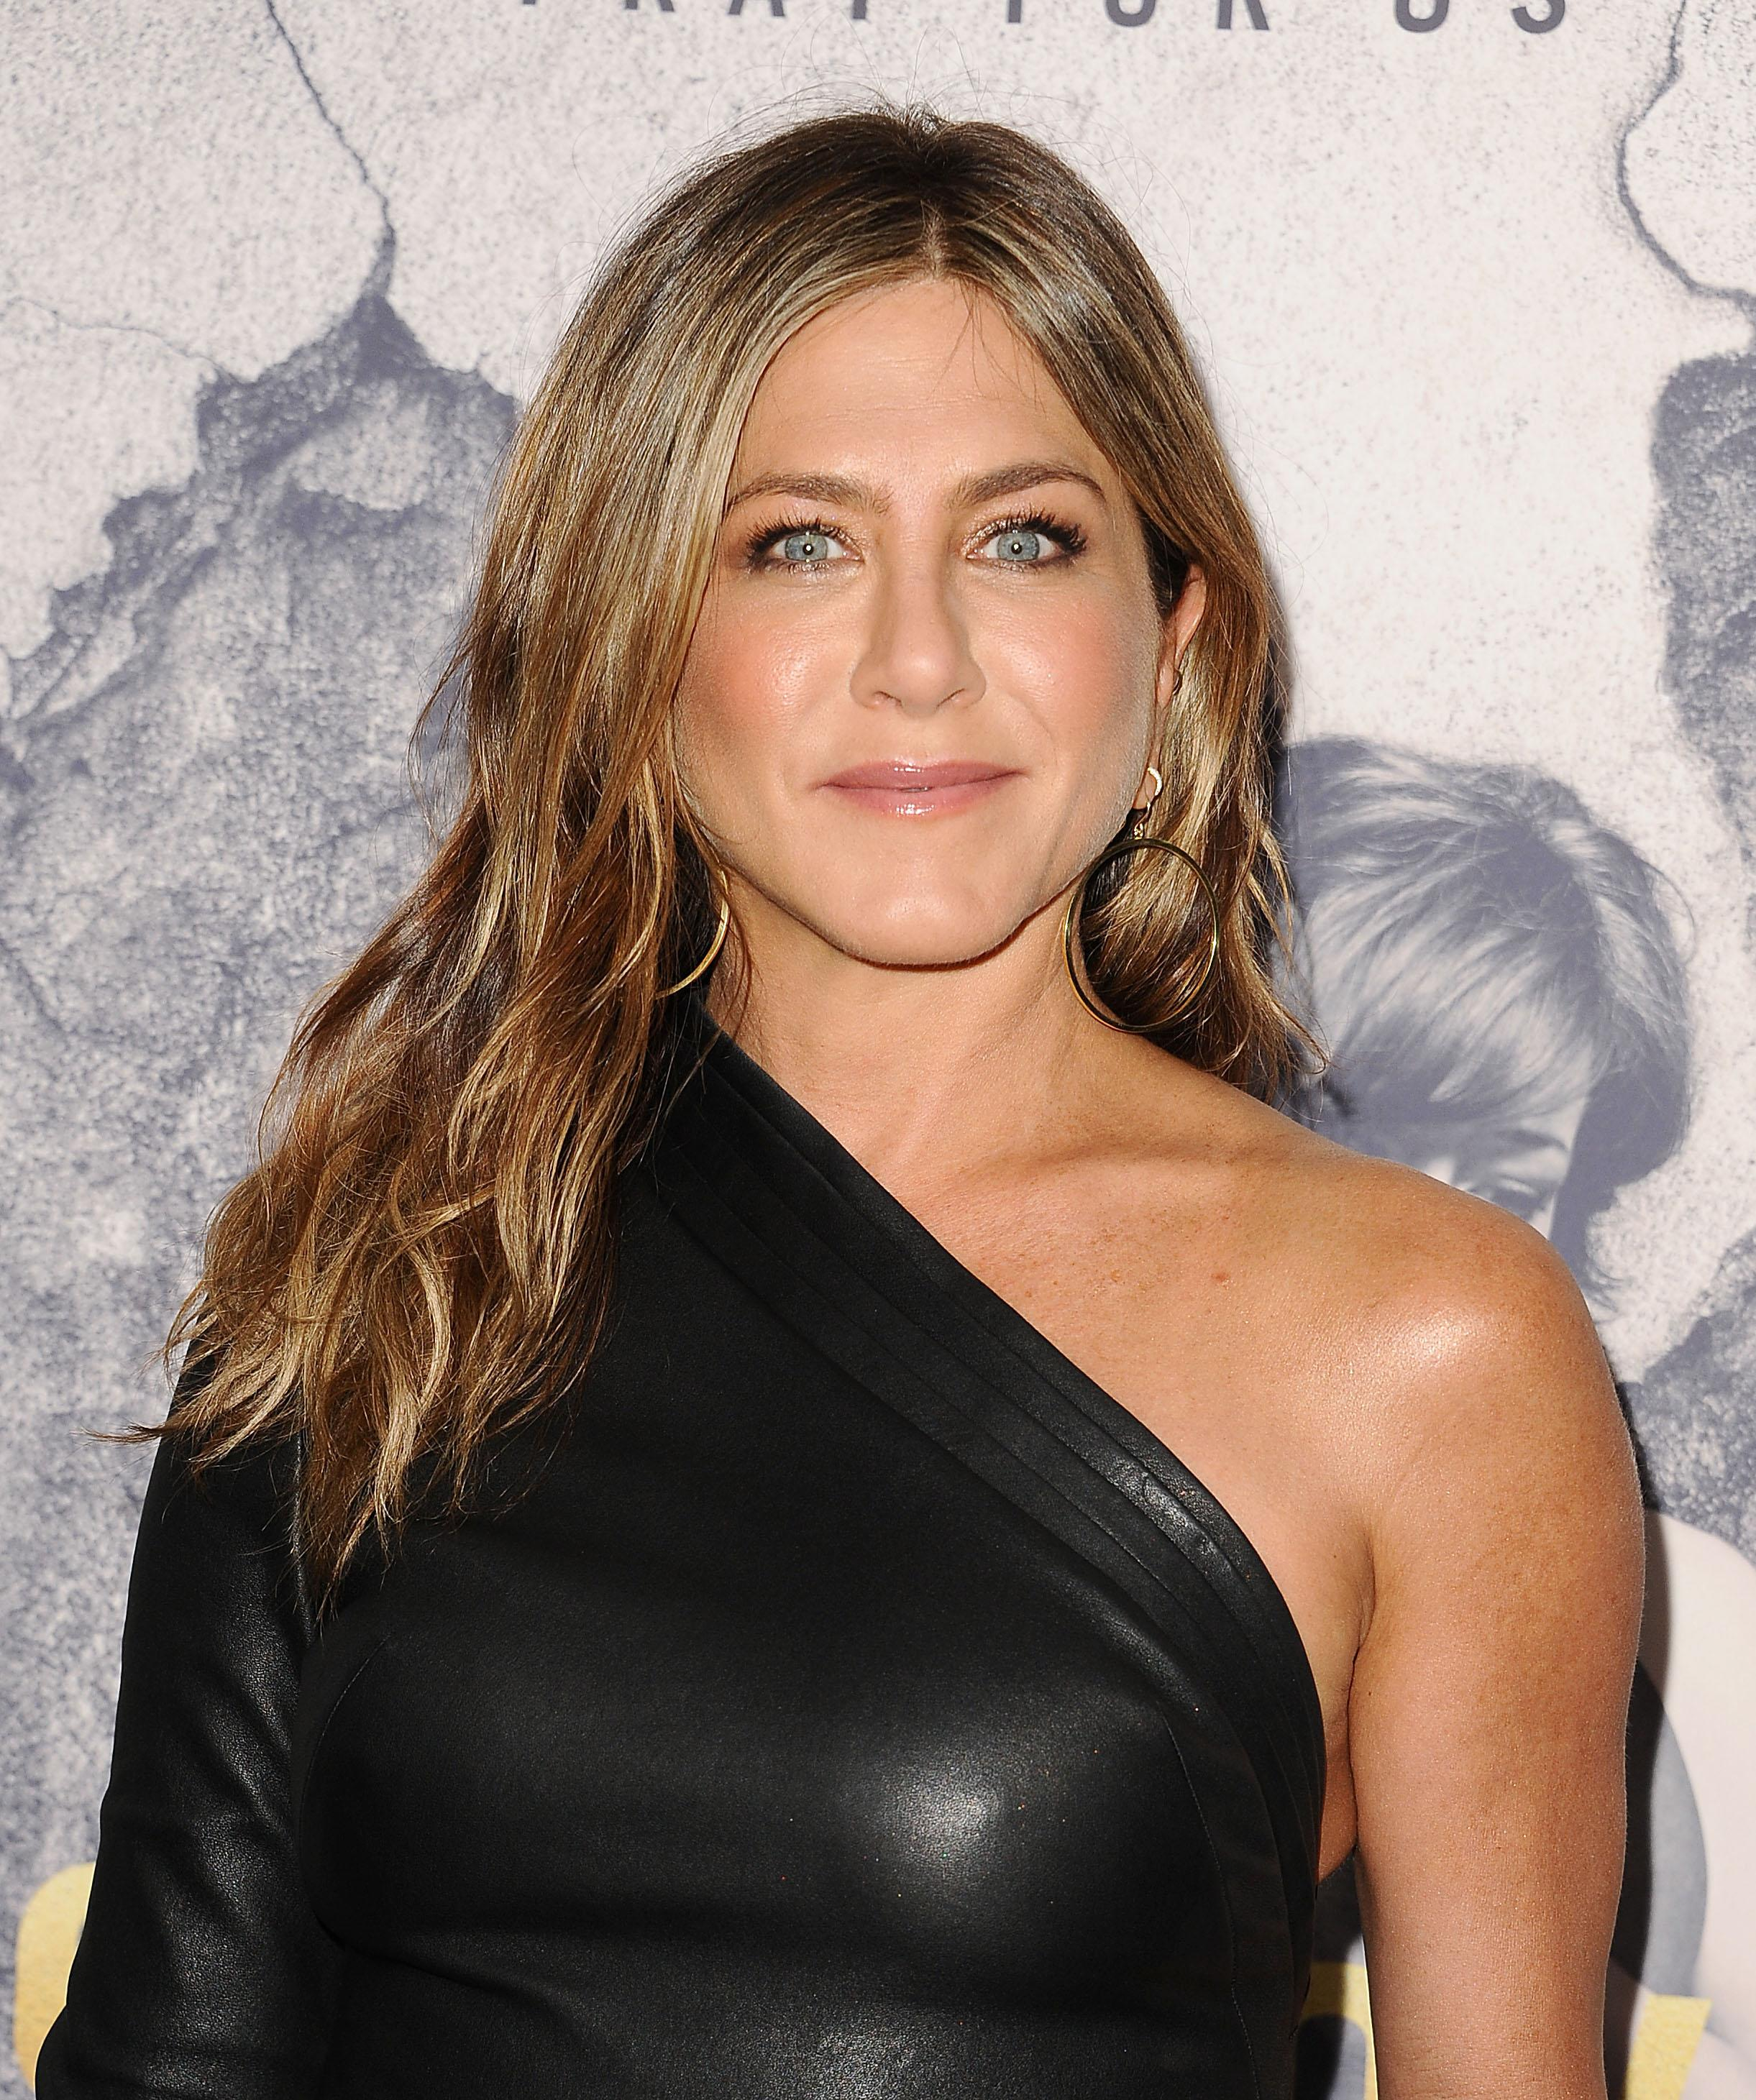 Jennifer Aniston is the star of her manager's Instagram ...